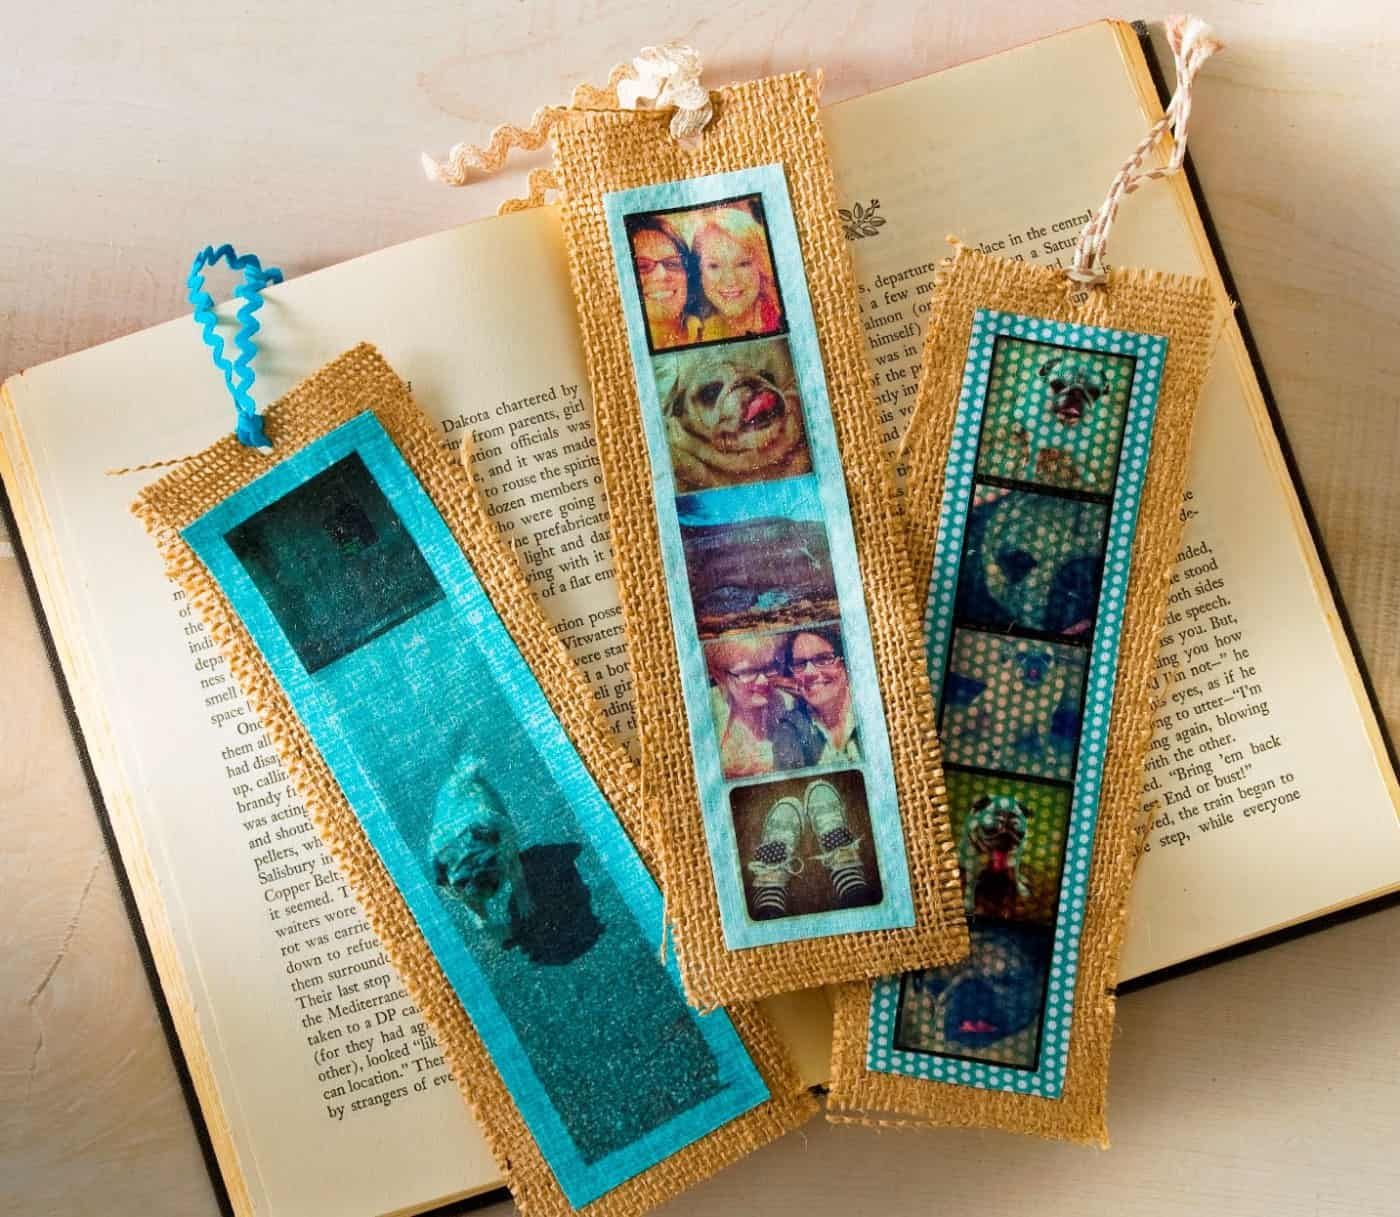 Wonderful Diy Bookmarks Part - 11: Make Some Personalized DIY Bookmarks Using Your Favorite Instagram Photos!  These Are The Perfect Gift